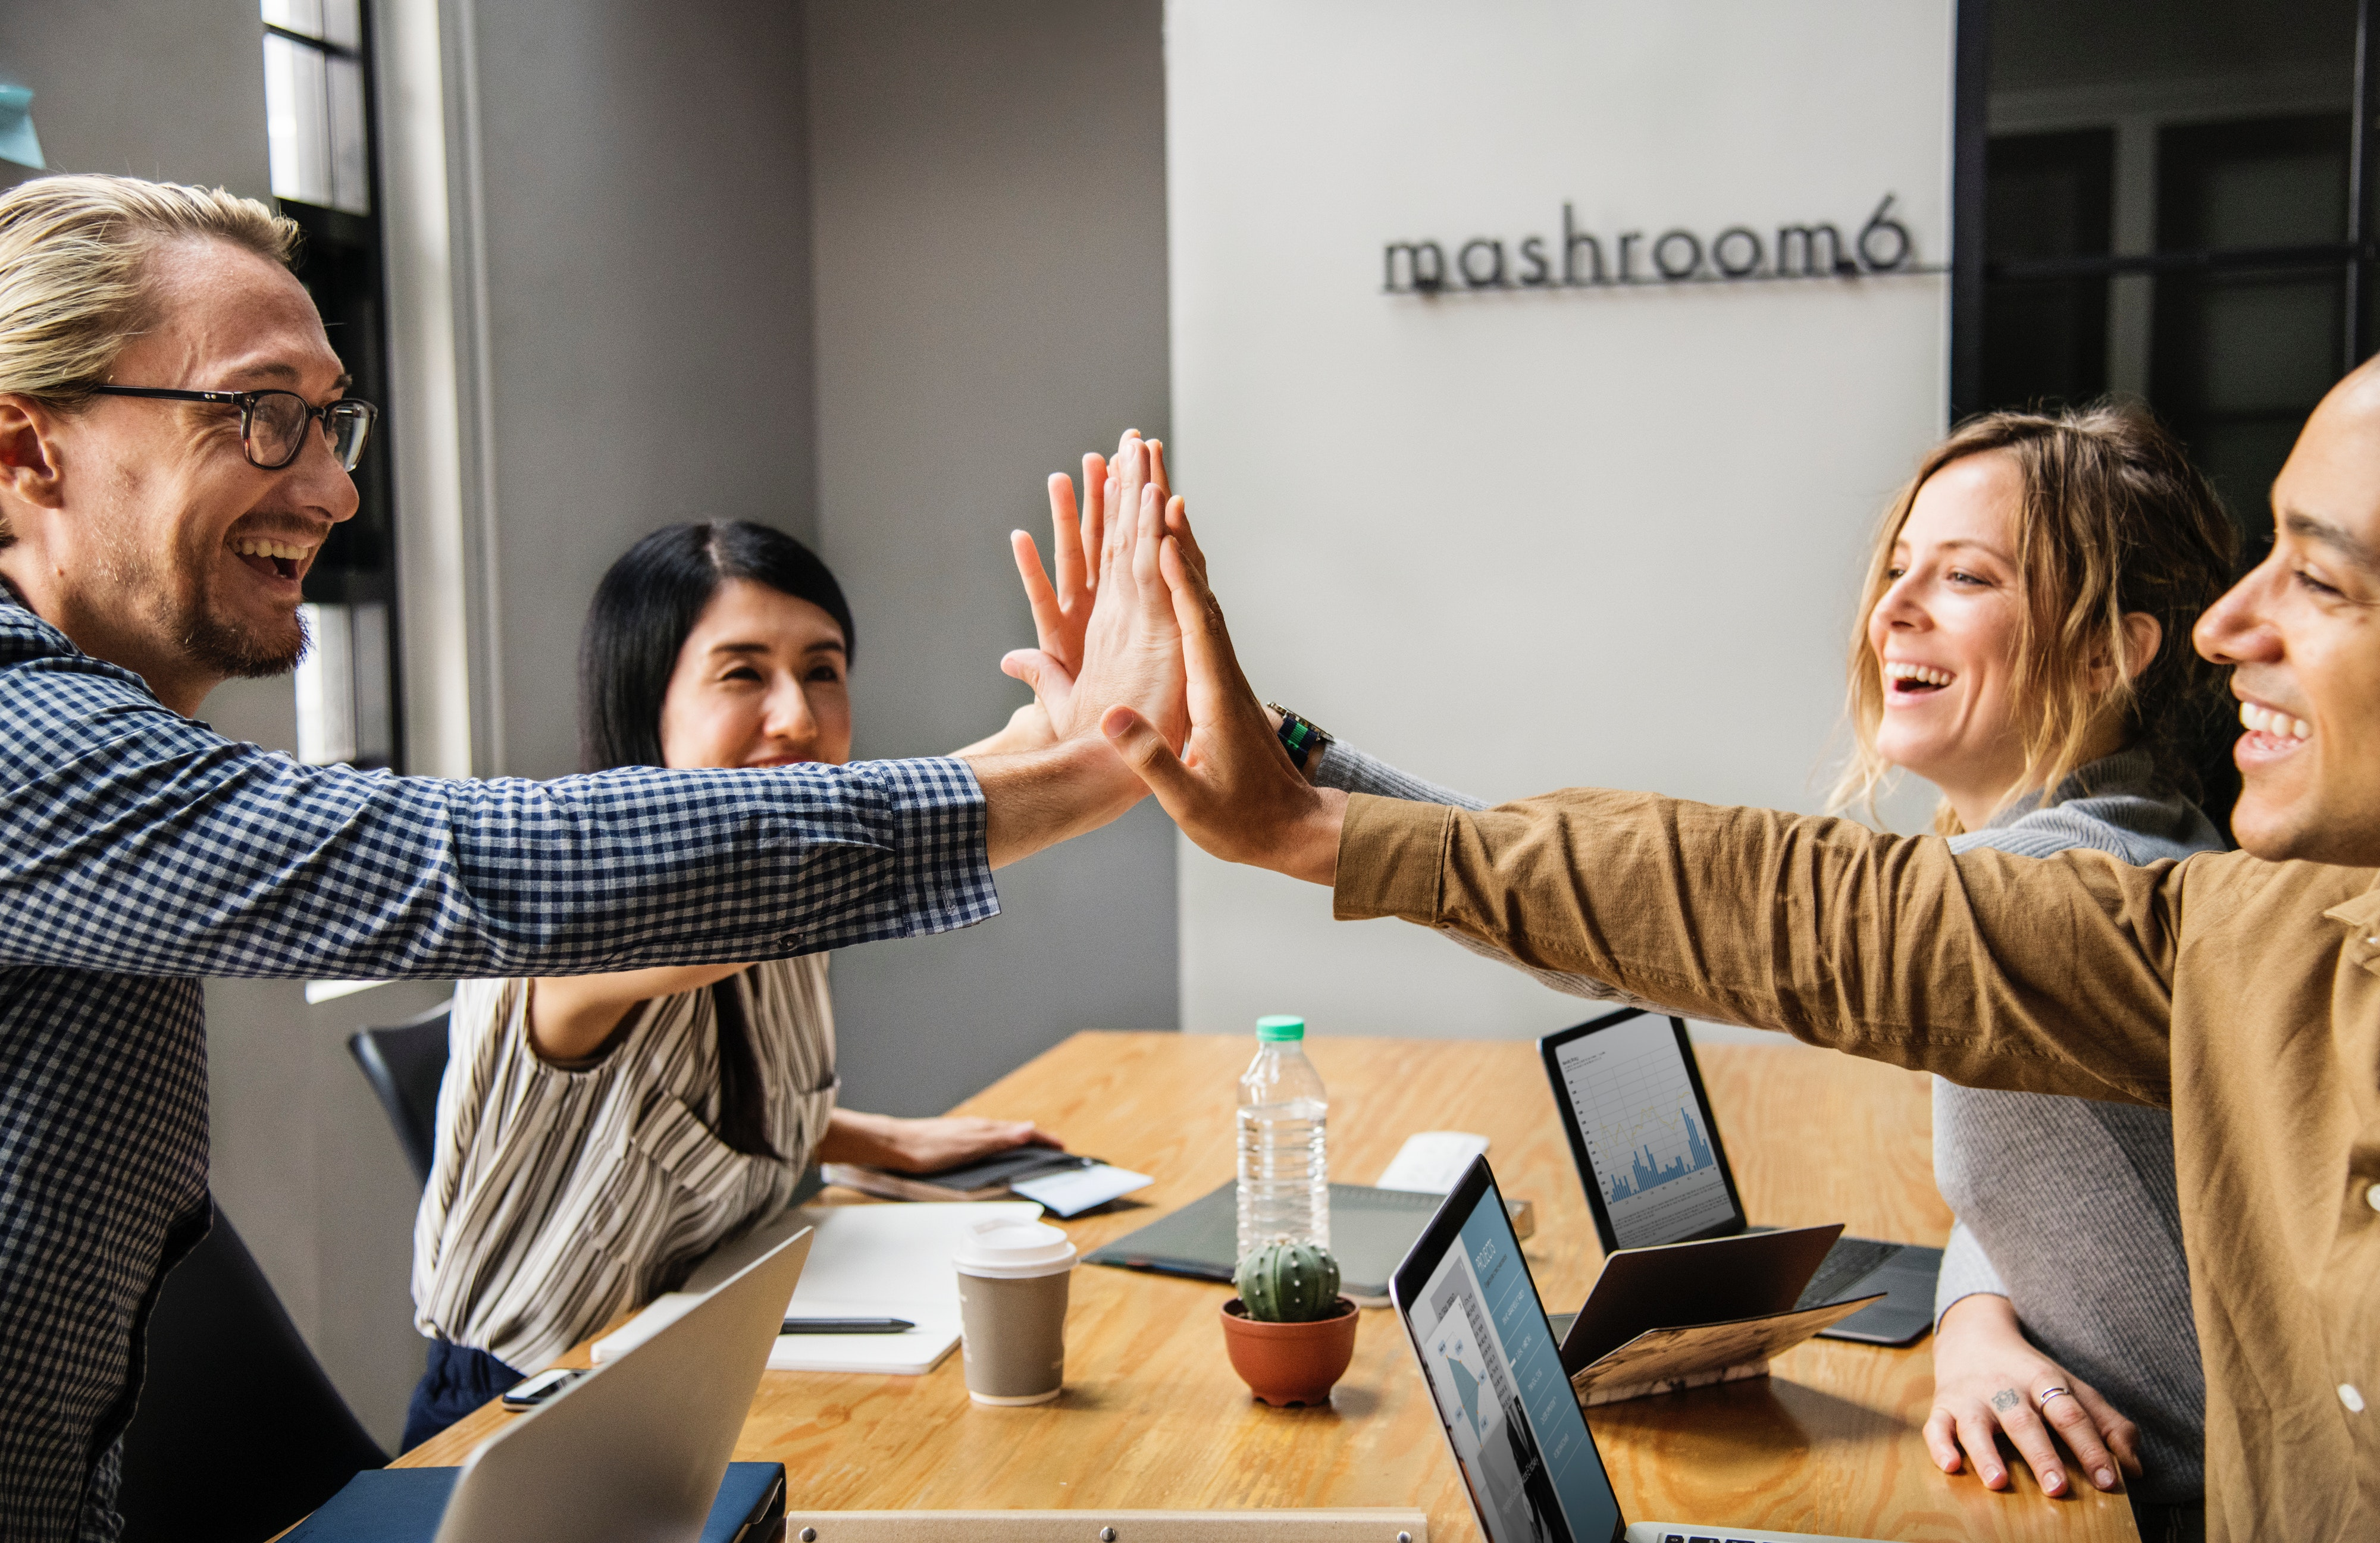 businessmen and women high fiving